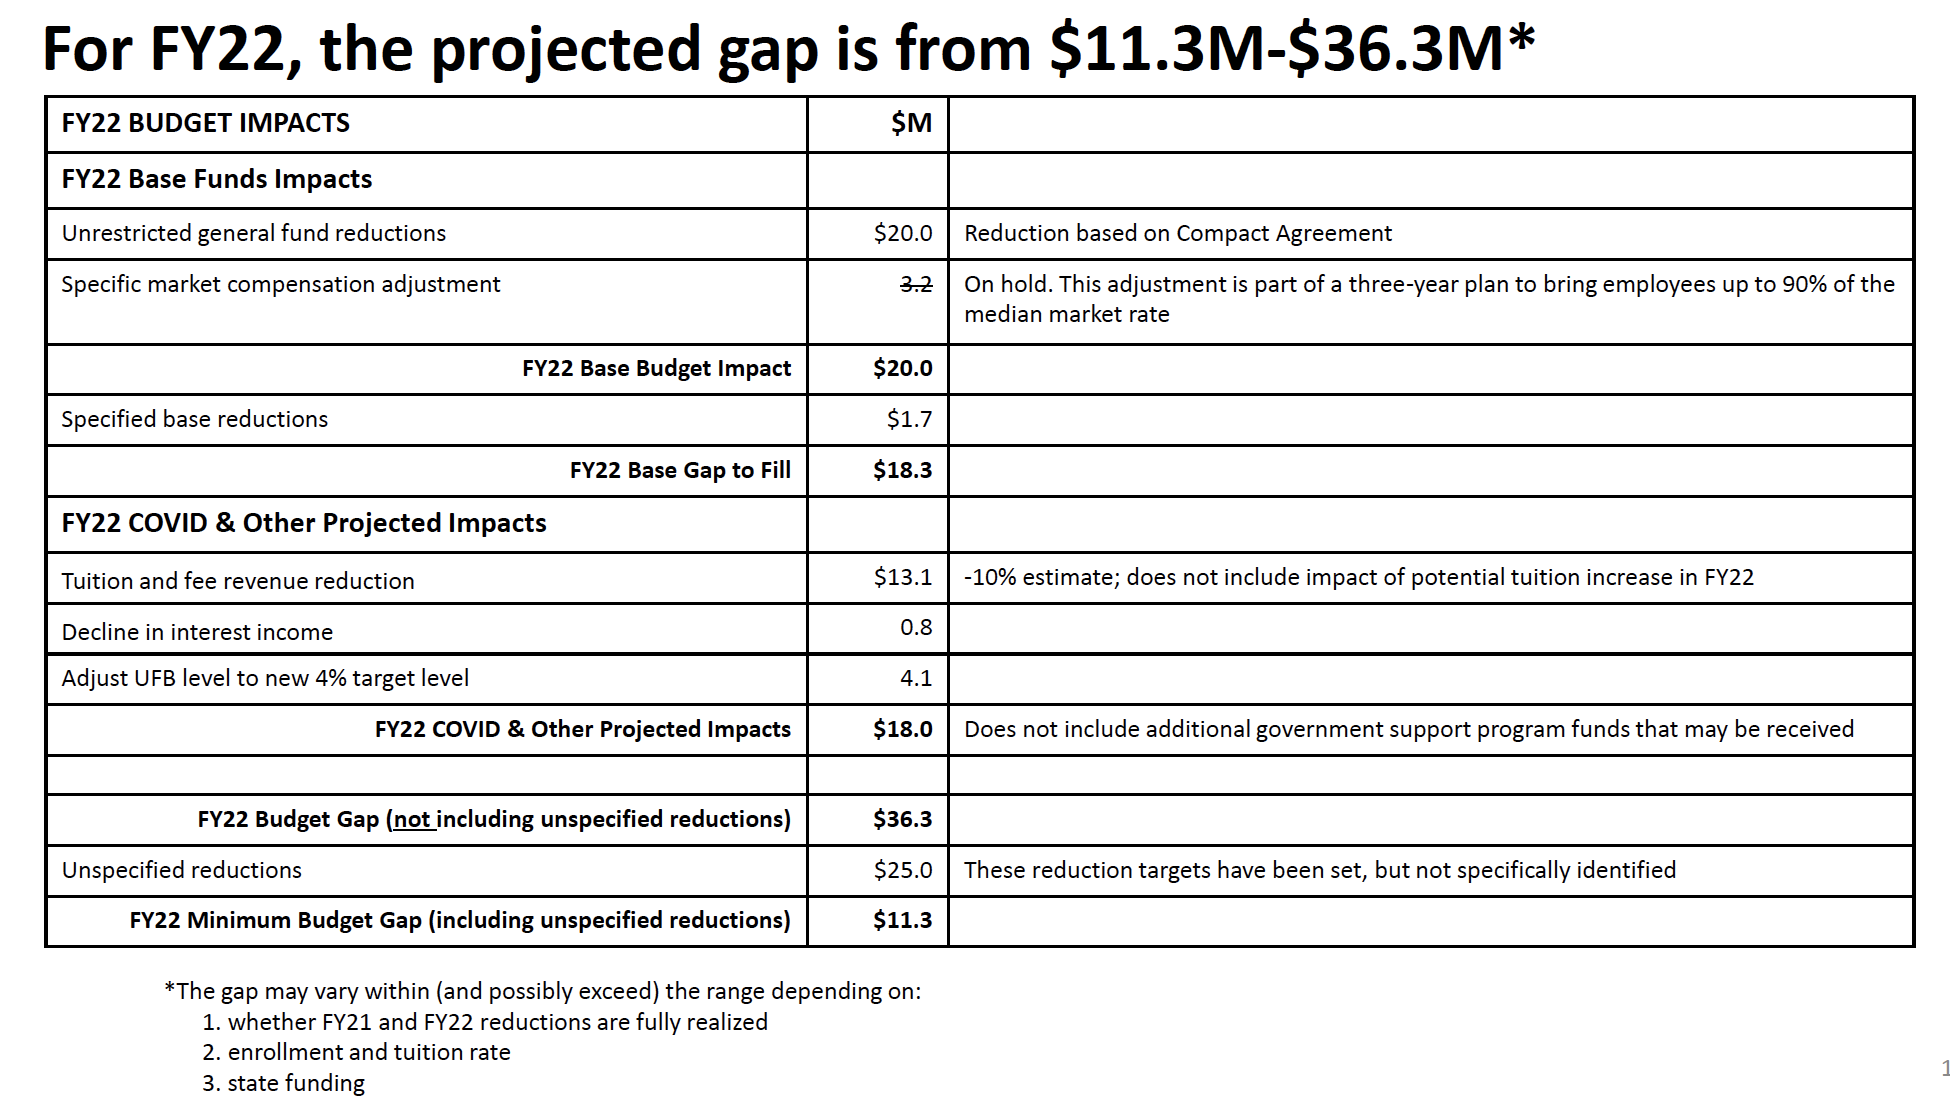 For FY22 the projected budget gap is from $11.3. M - $36.3 M